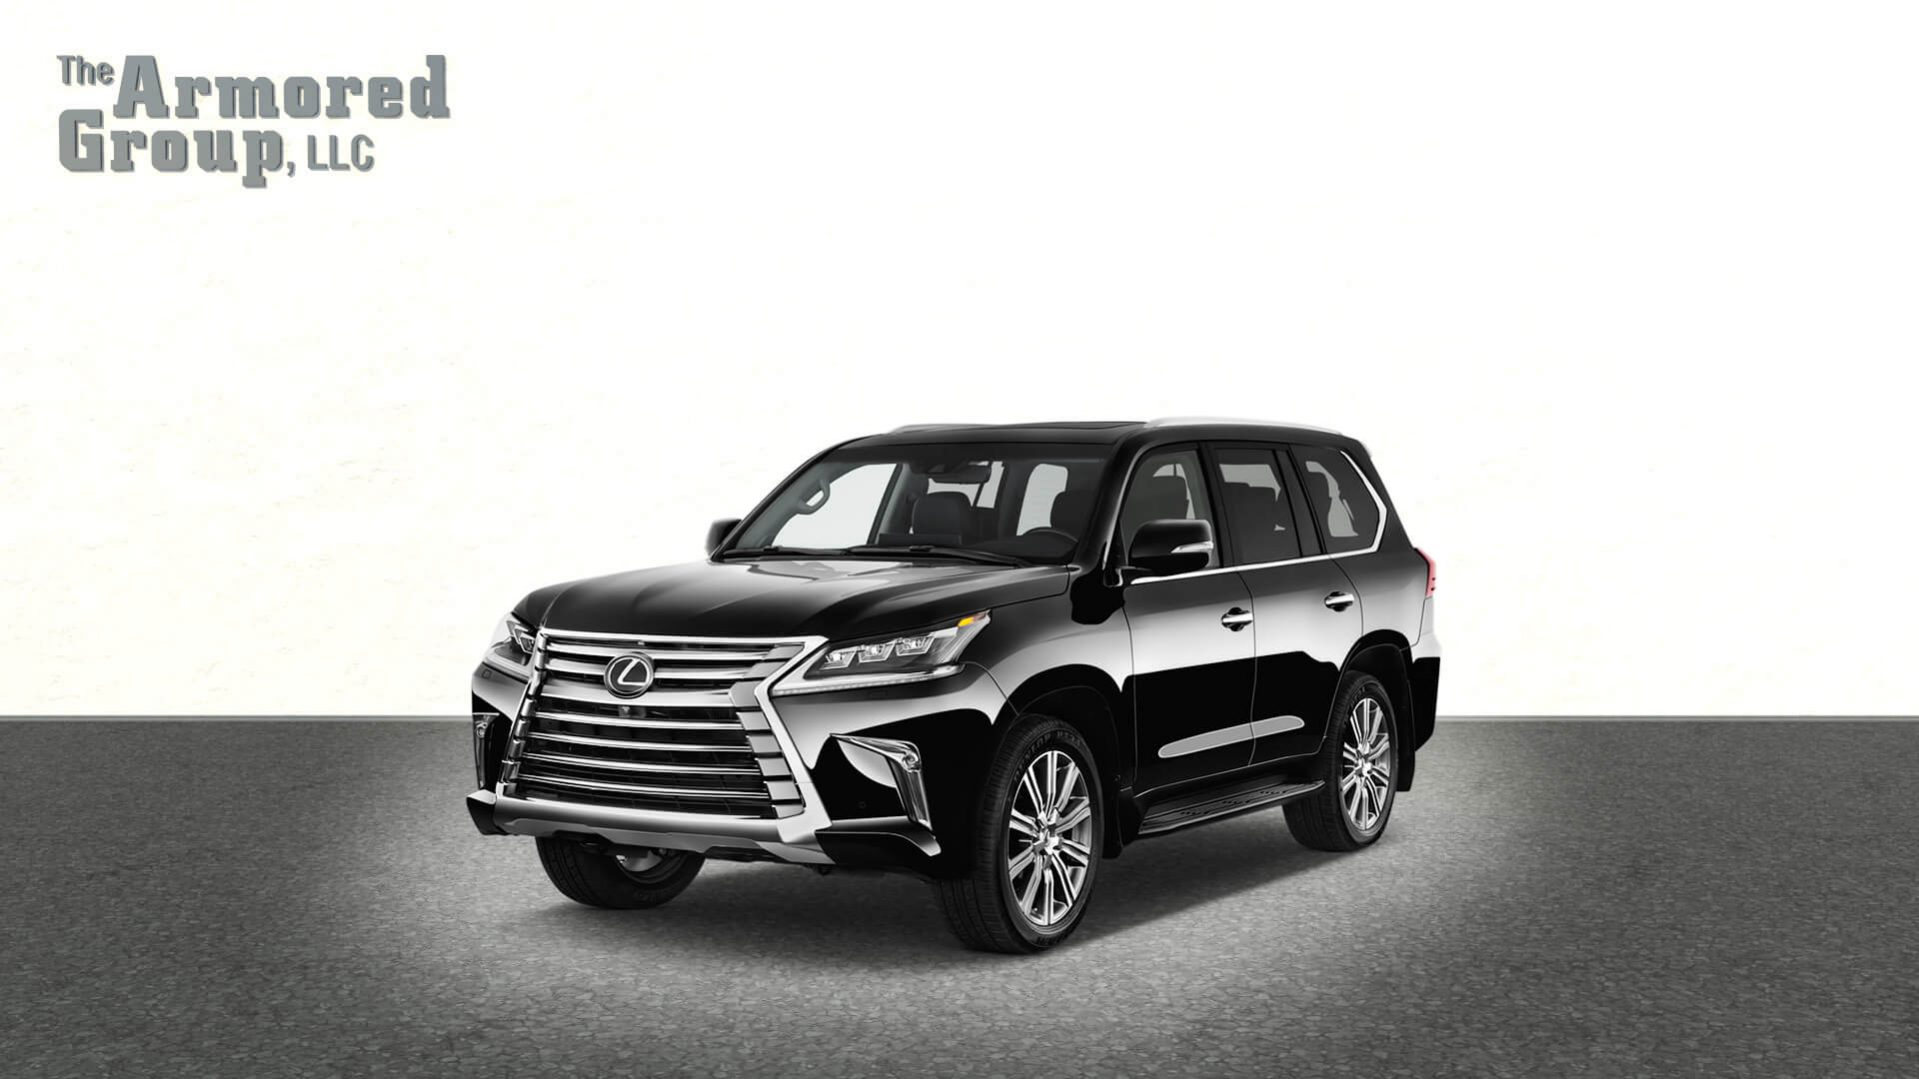 Armored Lx570 Bulletproof Lexus Suv The Armored Group